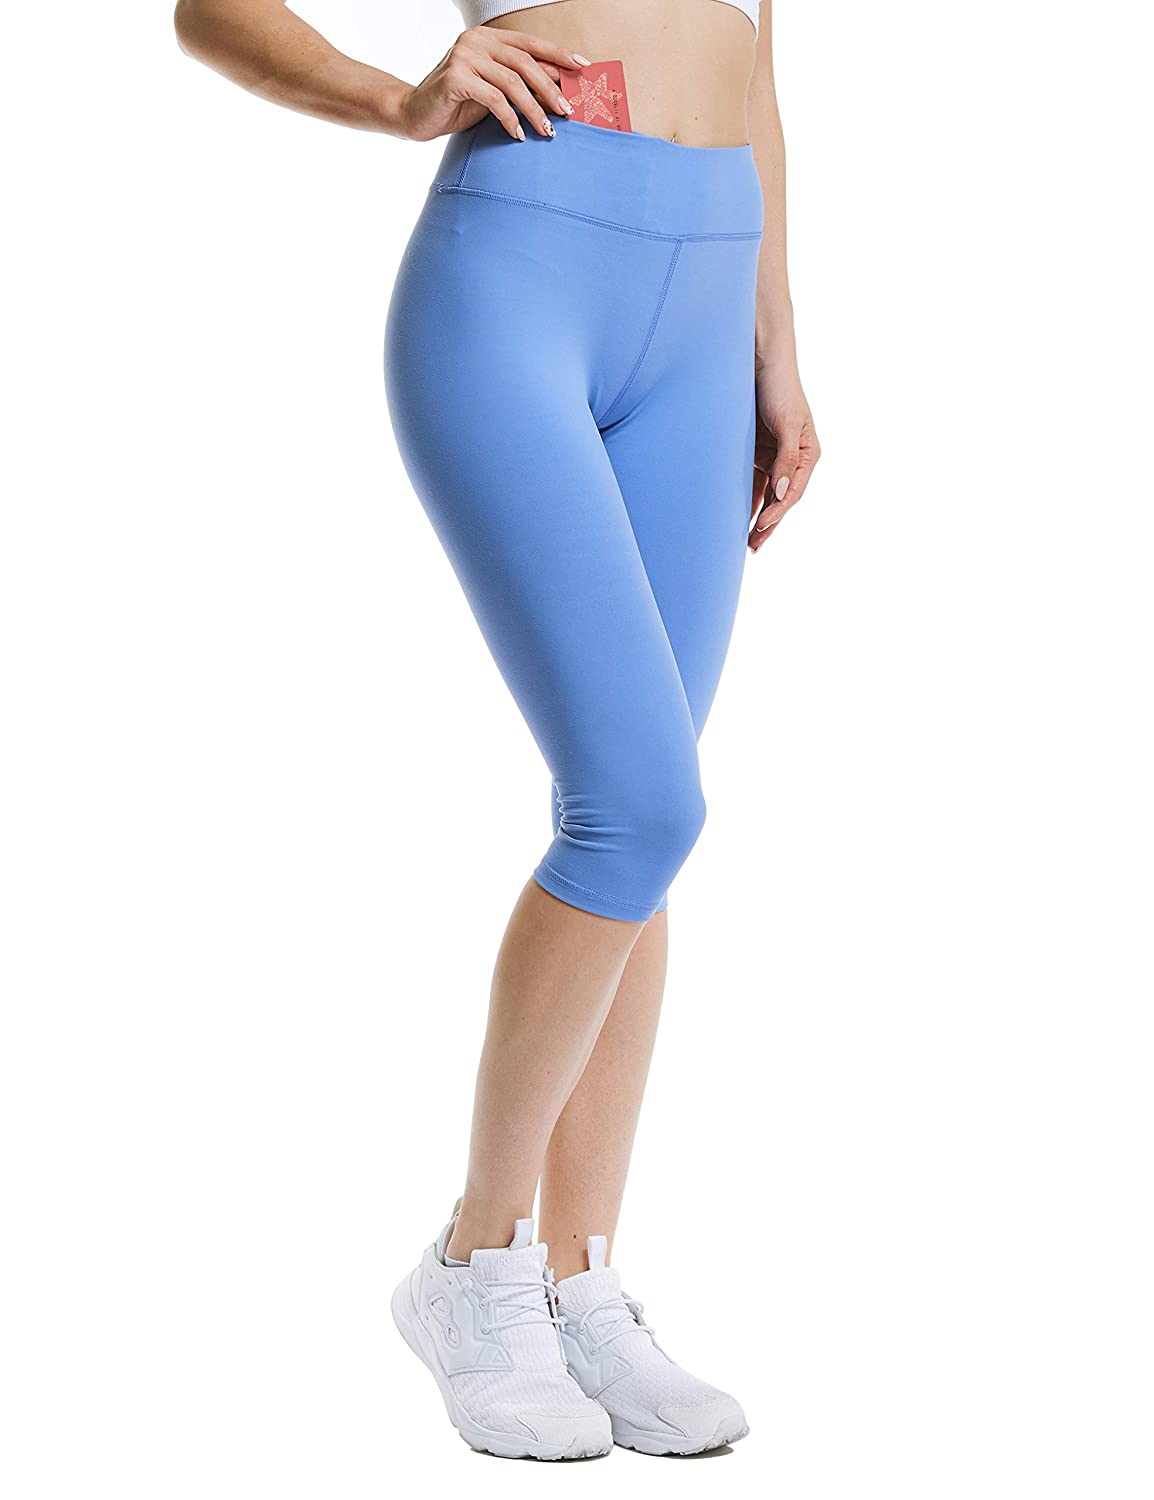 Brilliant bluee ANBENEED Gym Workout Leggings Yoga Pants for Women Non See Through Active Fitness Running Leggings with Pockets